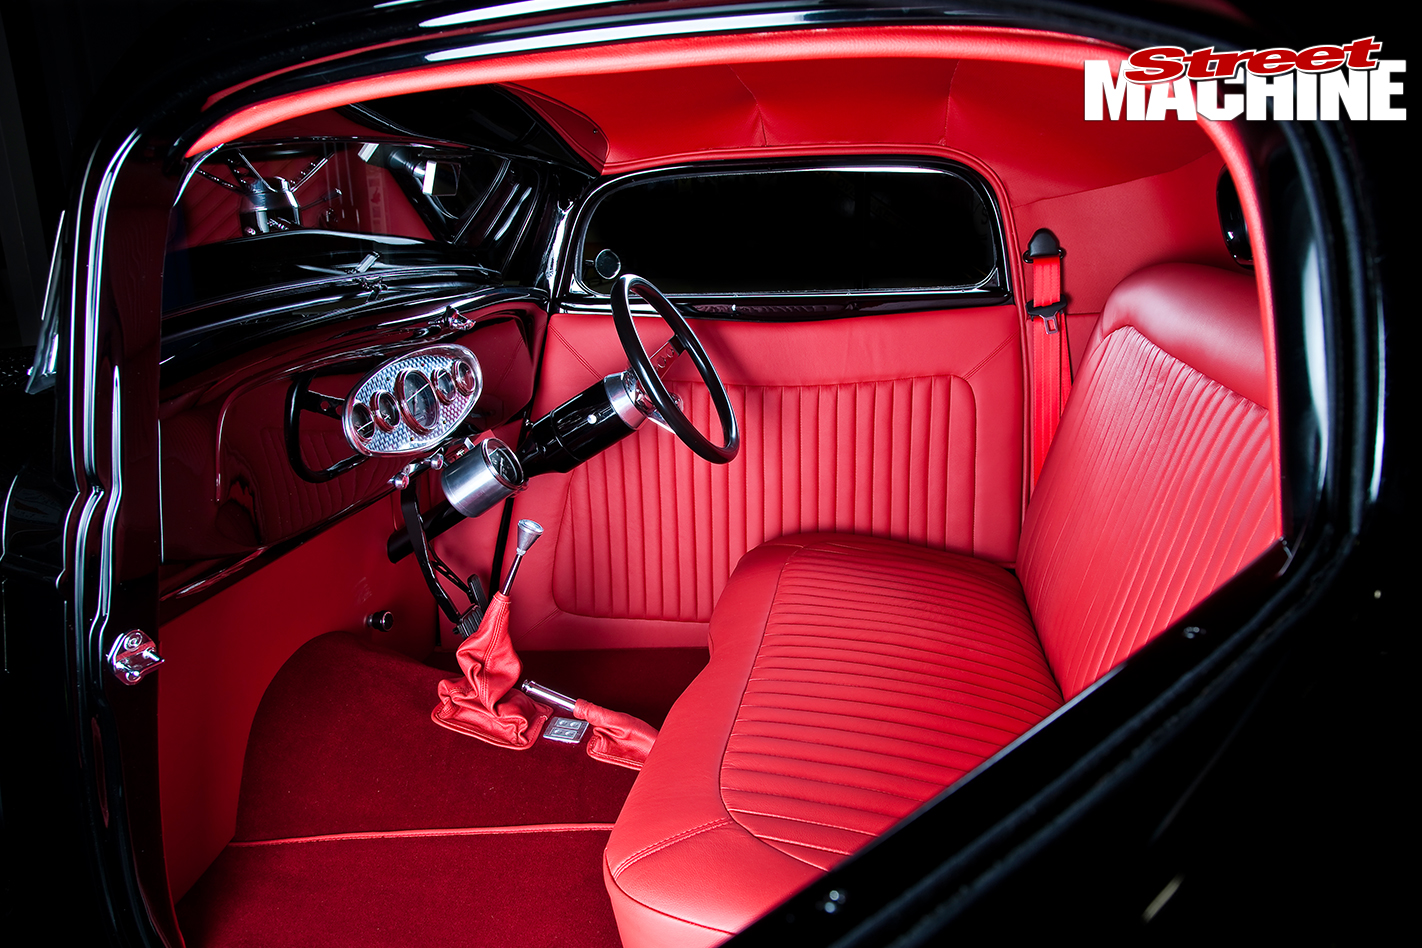 Ford -1934-3-window -coupe -inside